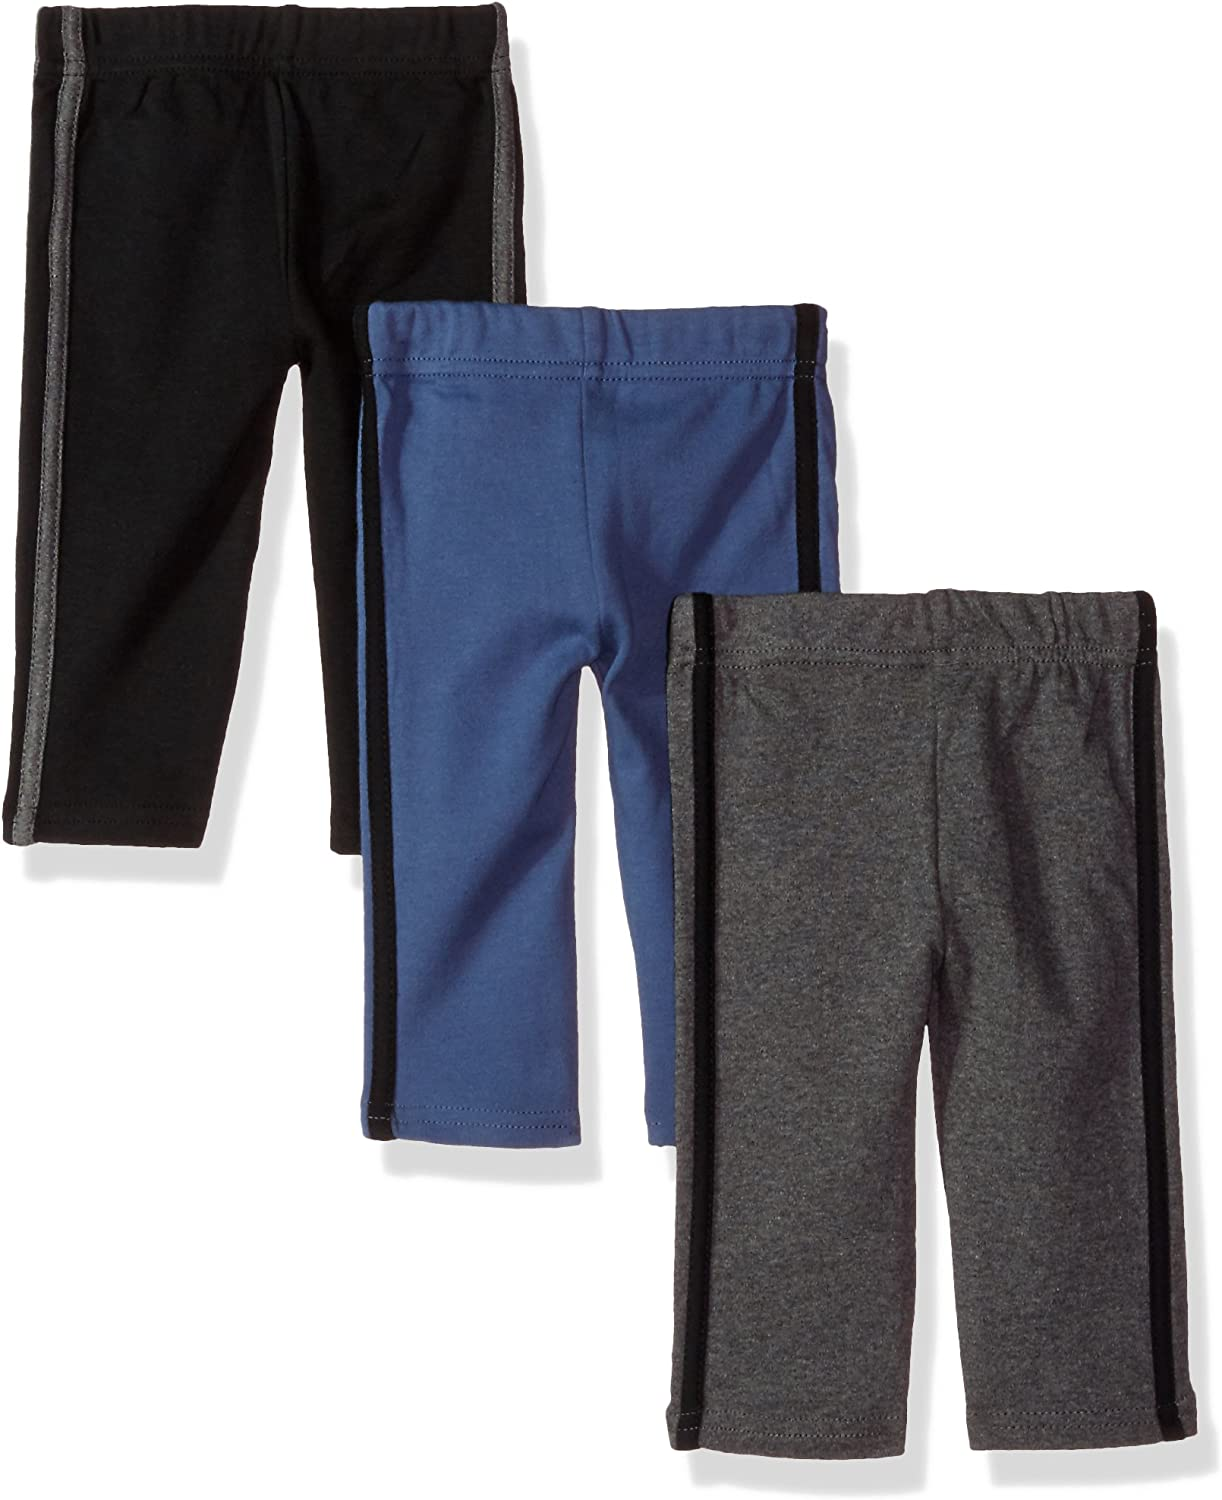 Cash special price Hudson Baby Unisex Cotton Pants and Los Angeles Mall Leggings